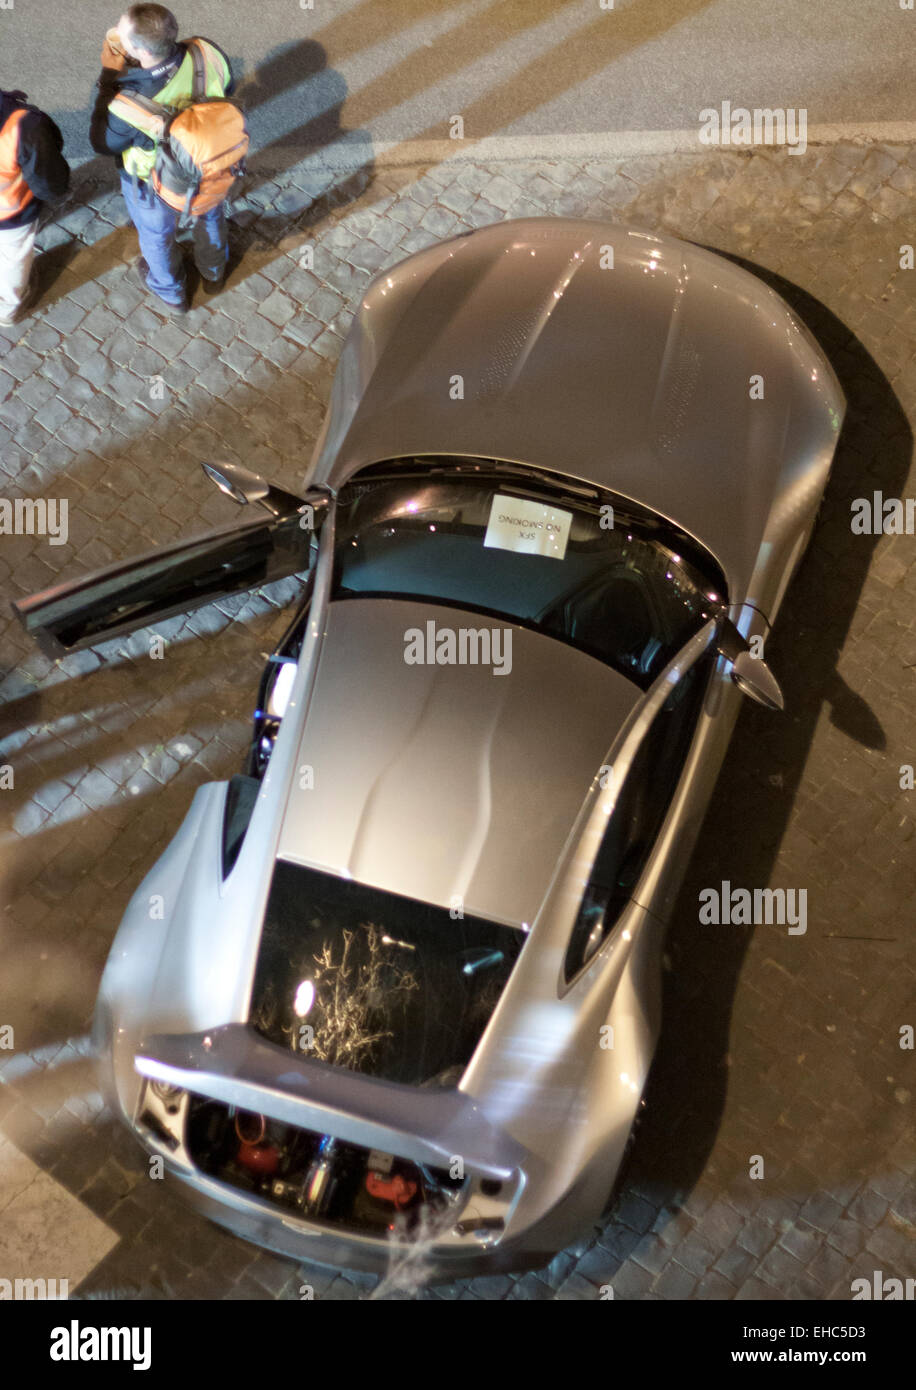 rome, italy. 10th march, 2015. filming car chase scene for new